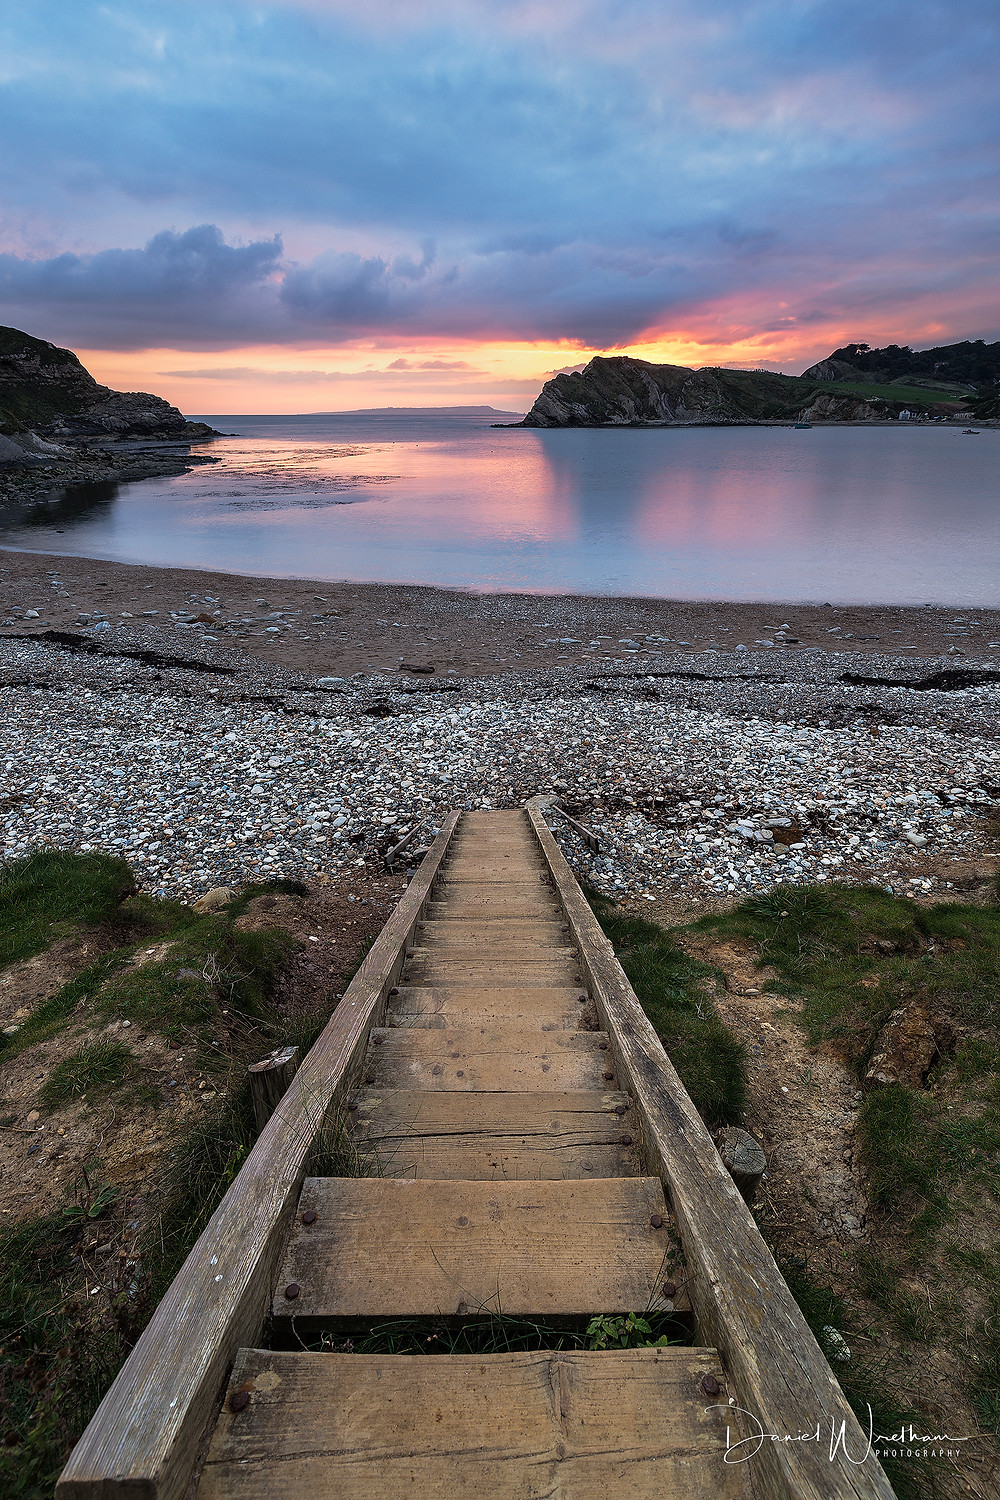 Lulworth Cove Sunset, Best photography locations, Dorset